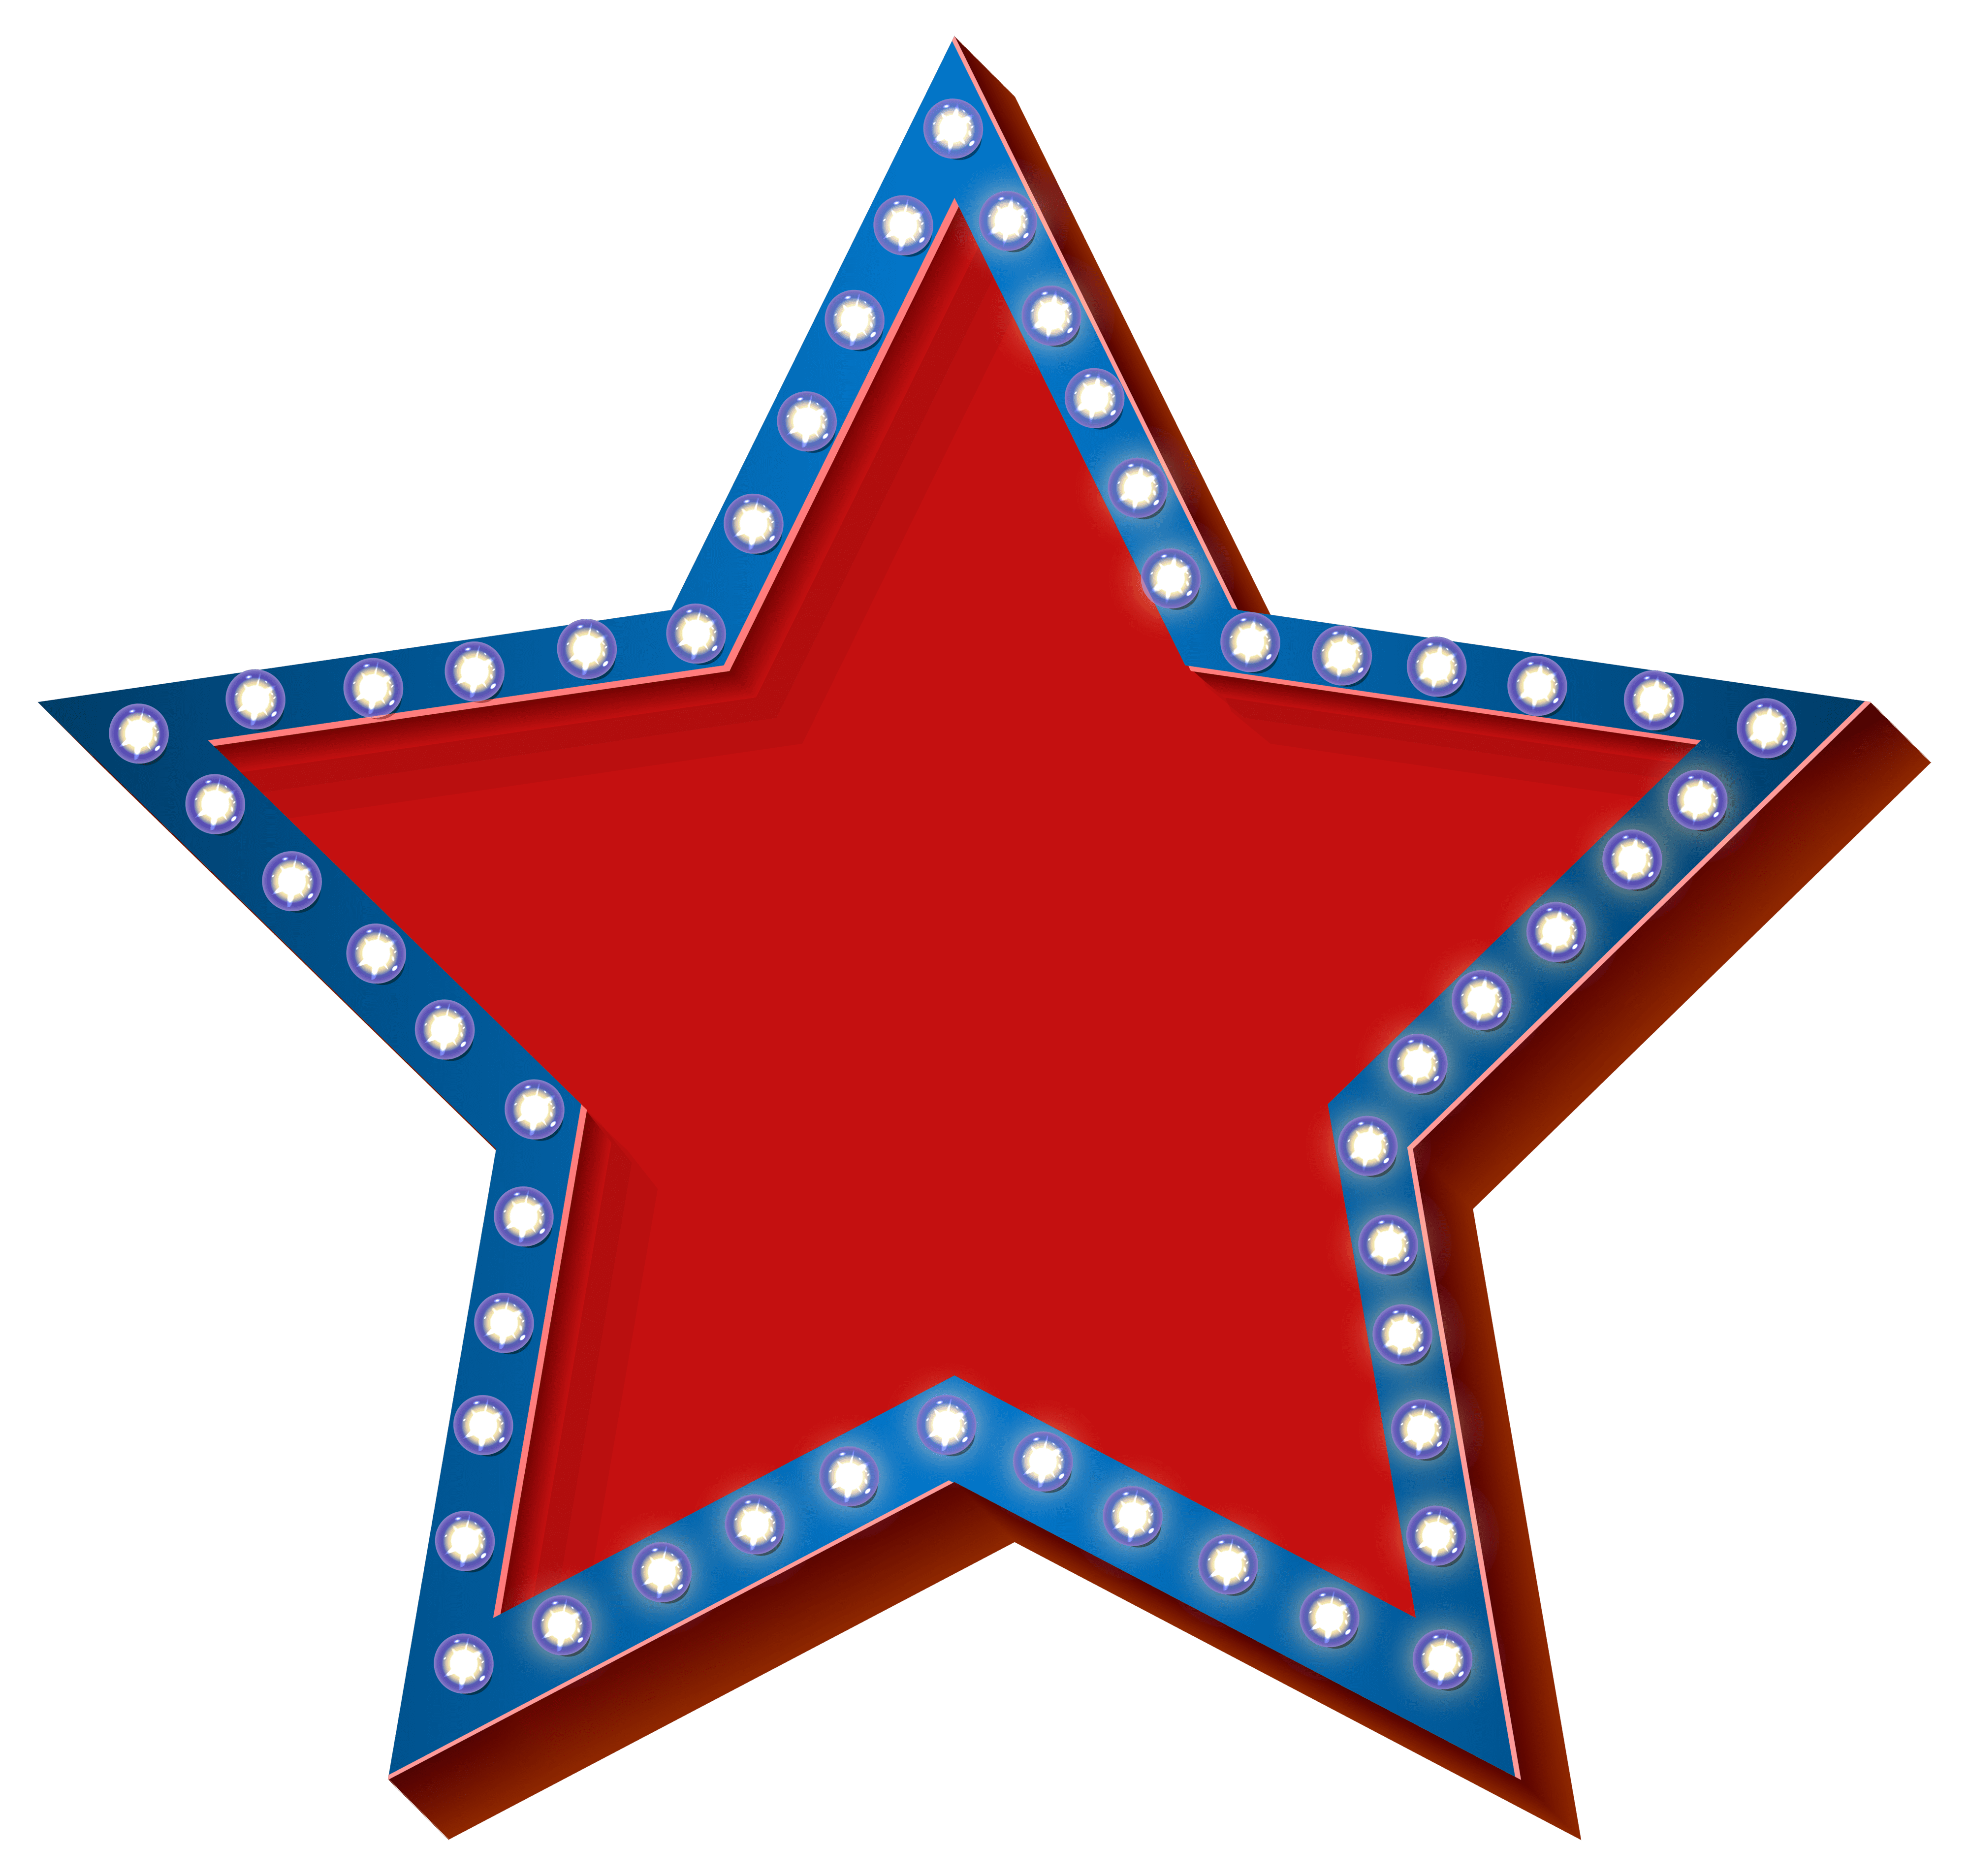 Star With Lights Transparent PNG Clip Art Image